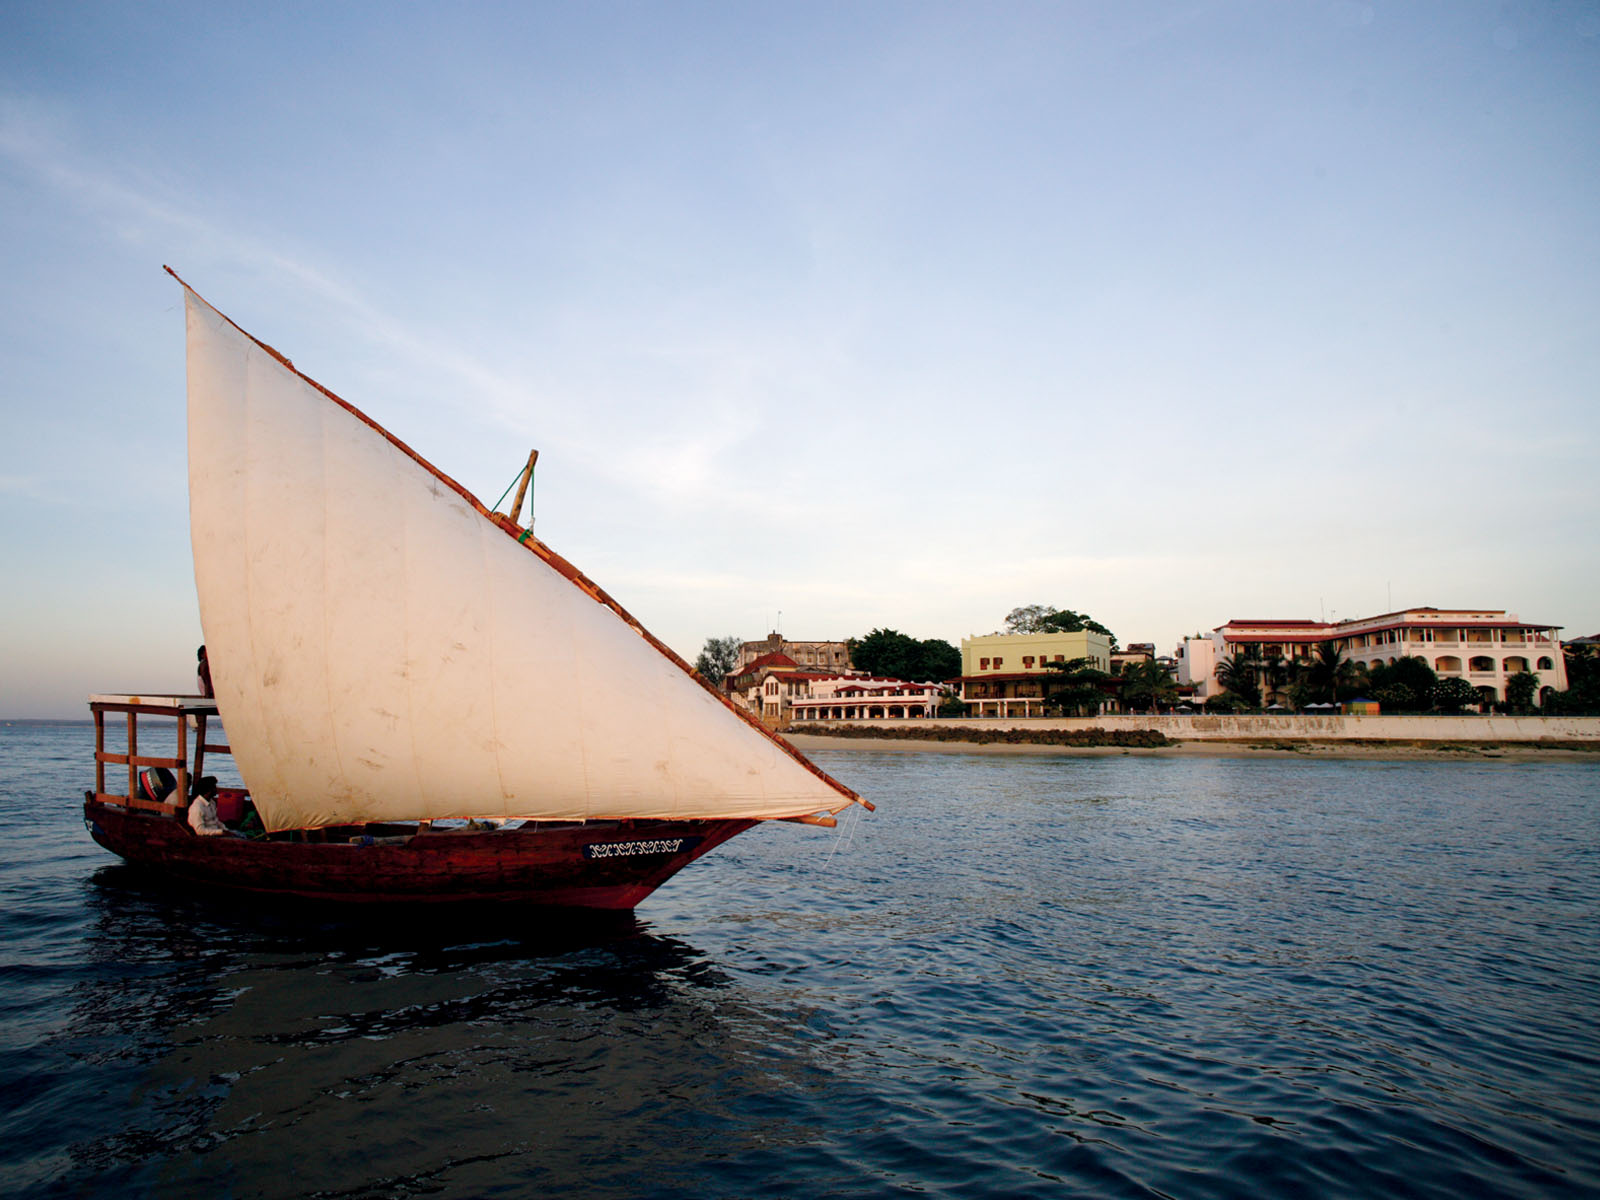 Gallery Tours & Safari - Zanzibar-fact-file